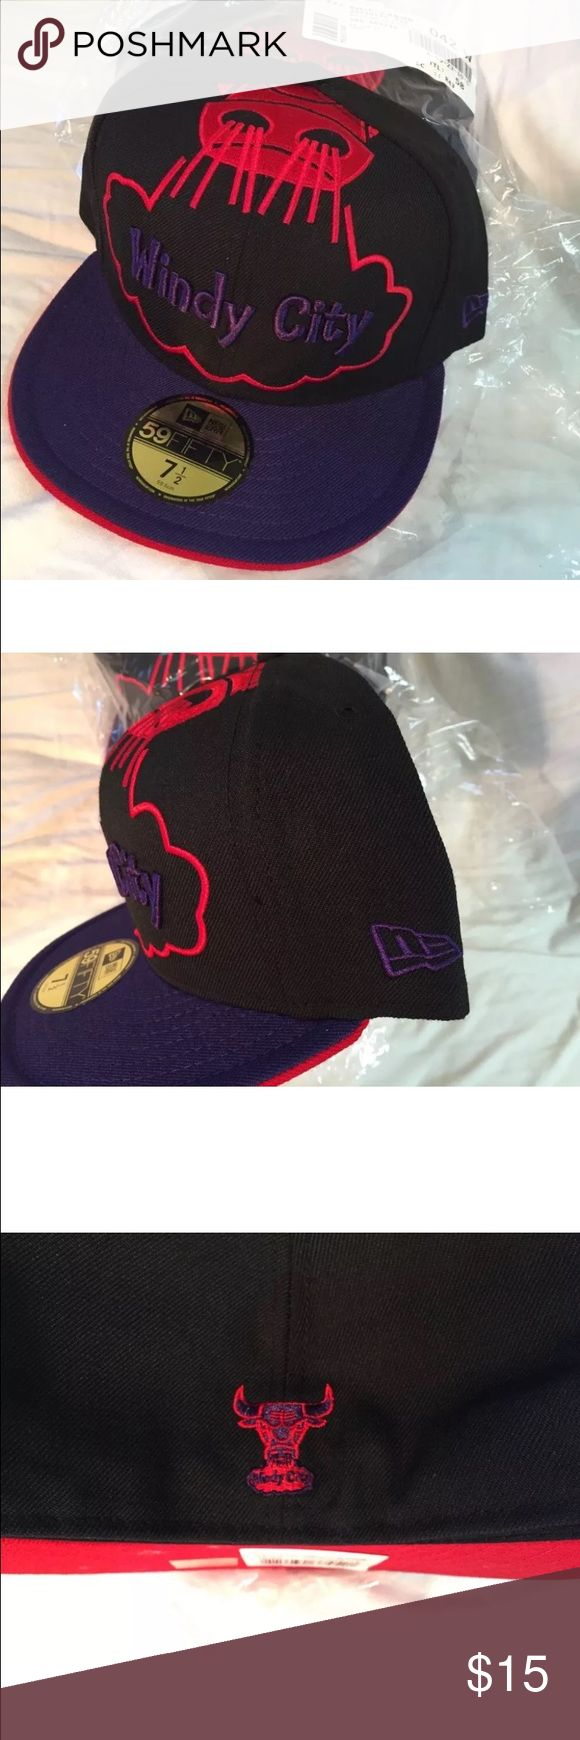 NWT Chicago bulls windy city fitted 59fifty hat Brand new with tag size 7 1/2 new era New Era Accessories Hats